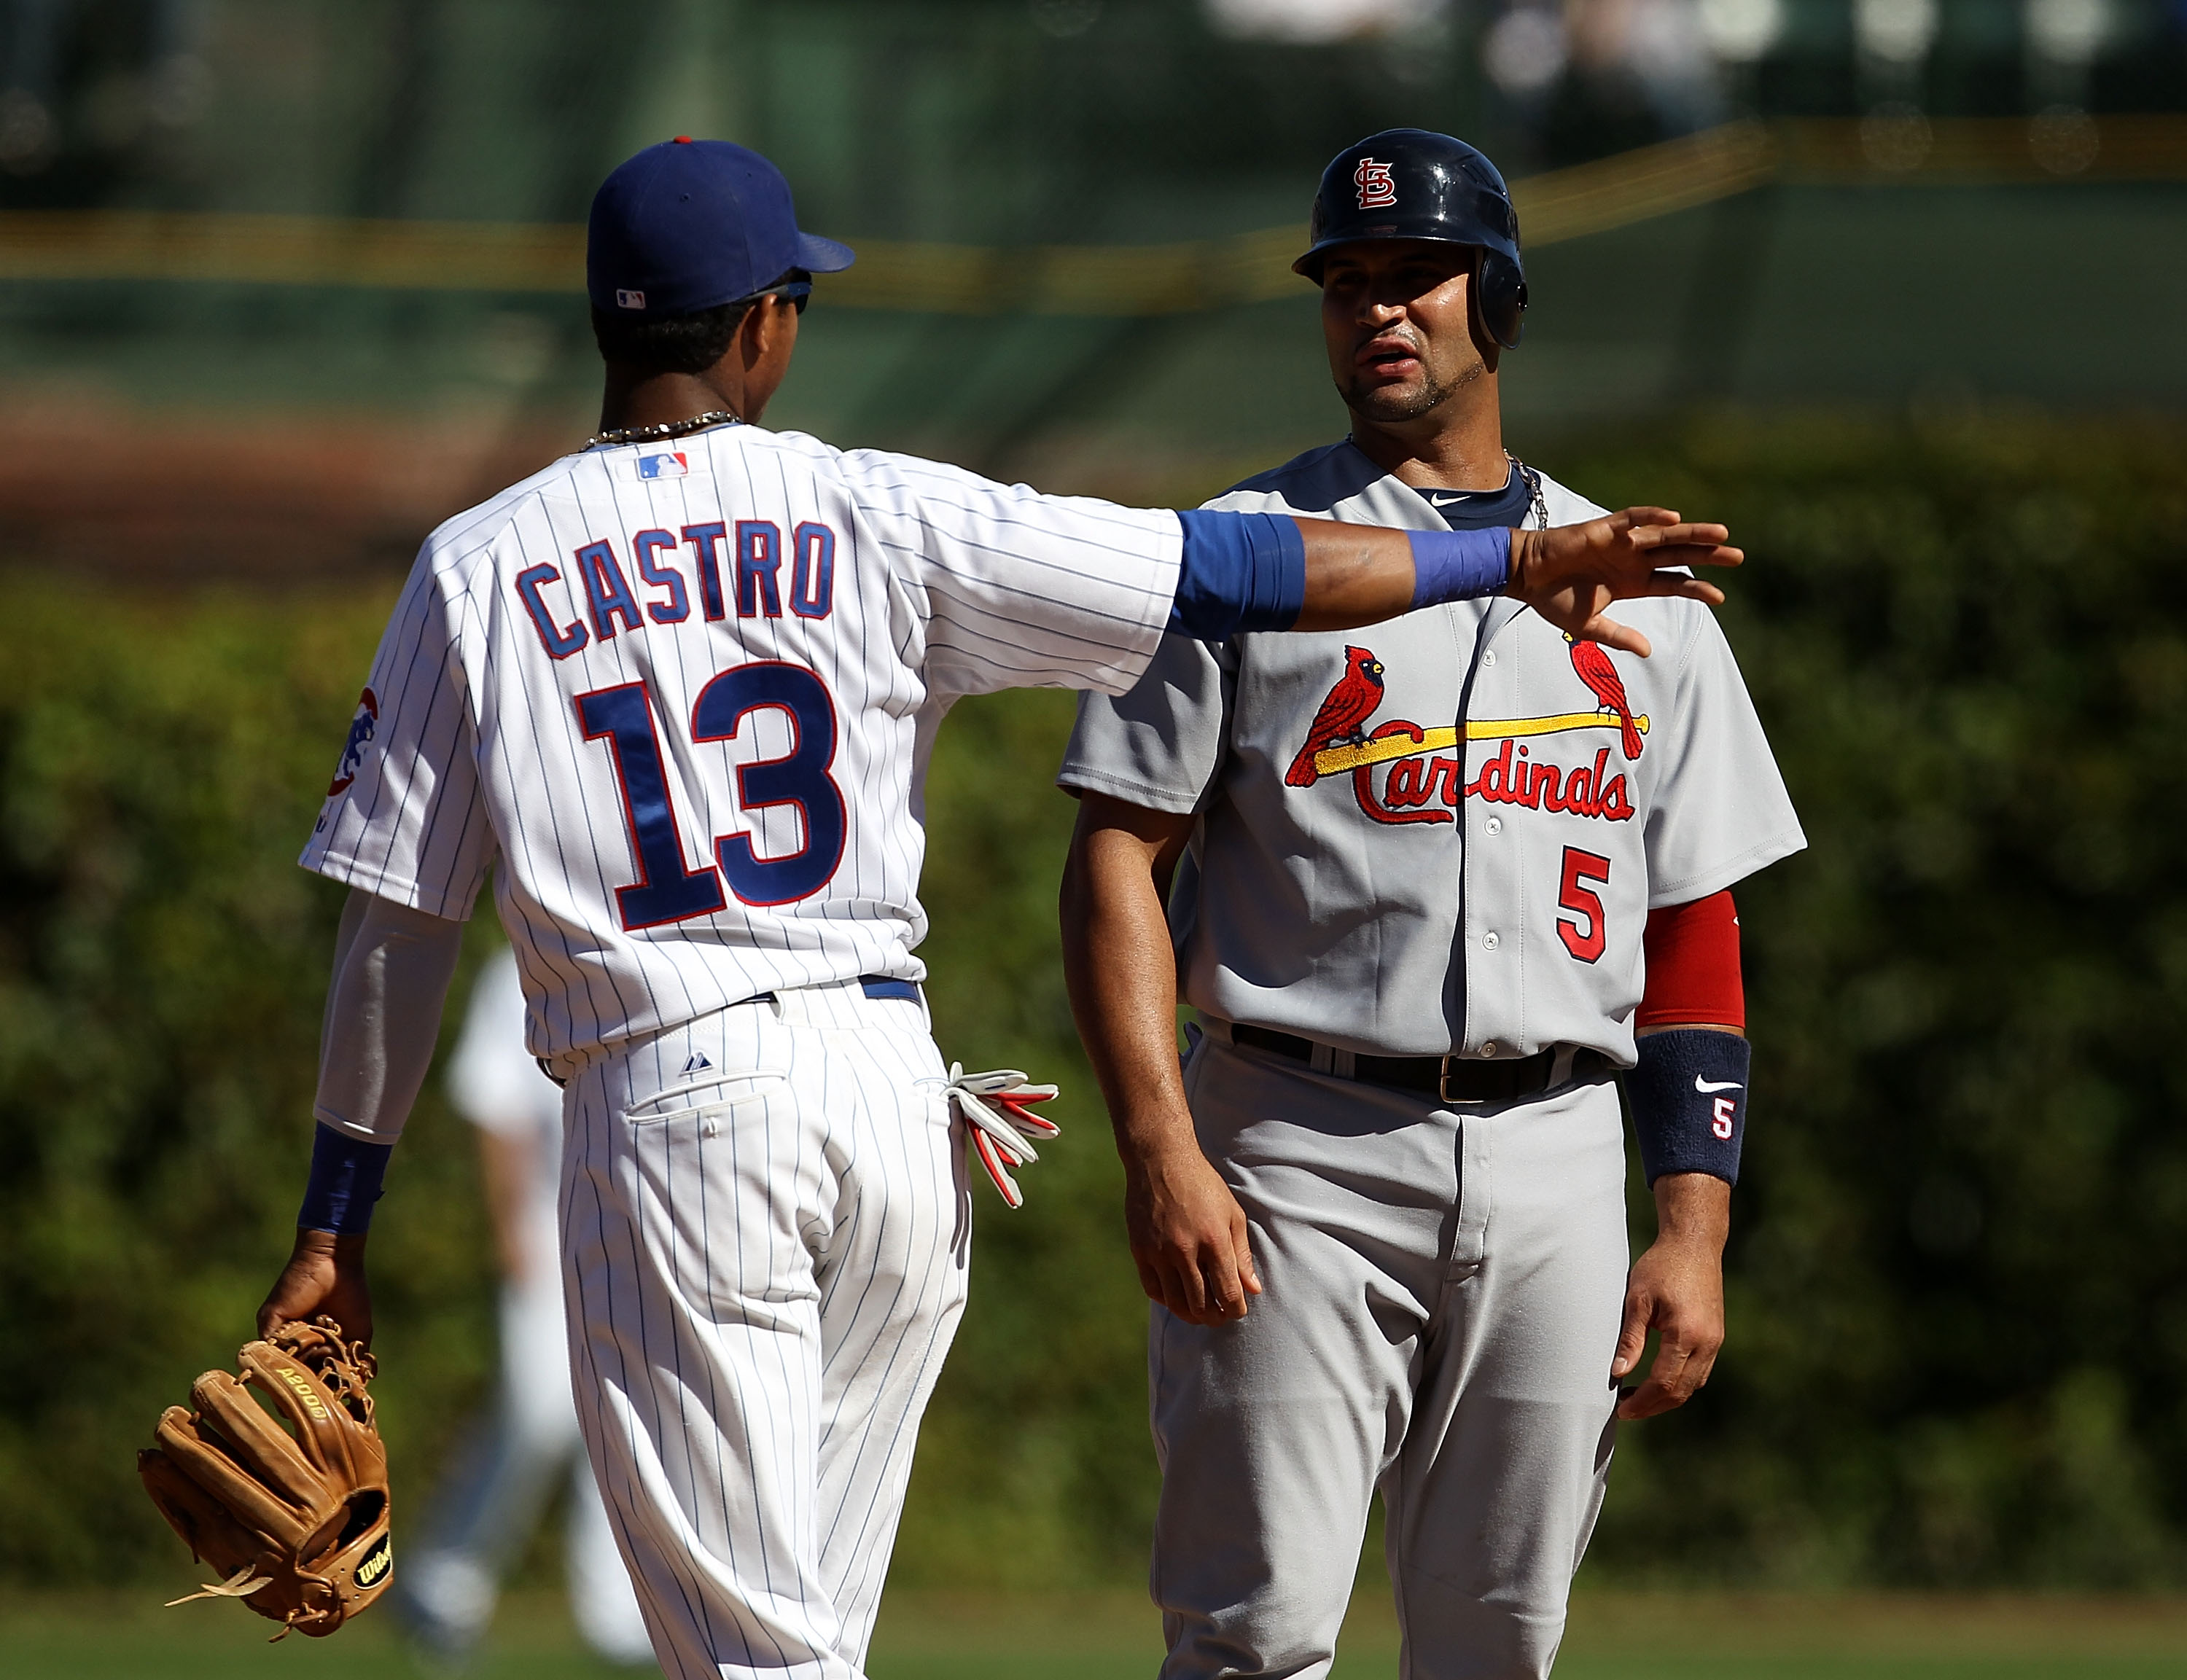 Could Castro be throwing the ball to Pujols in 2012???